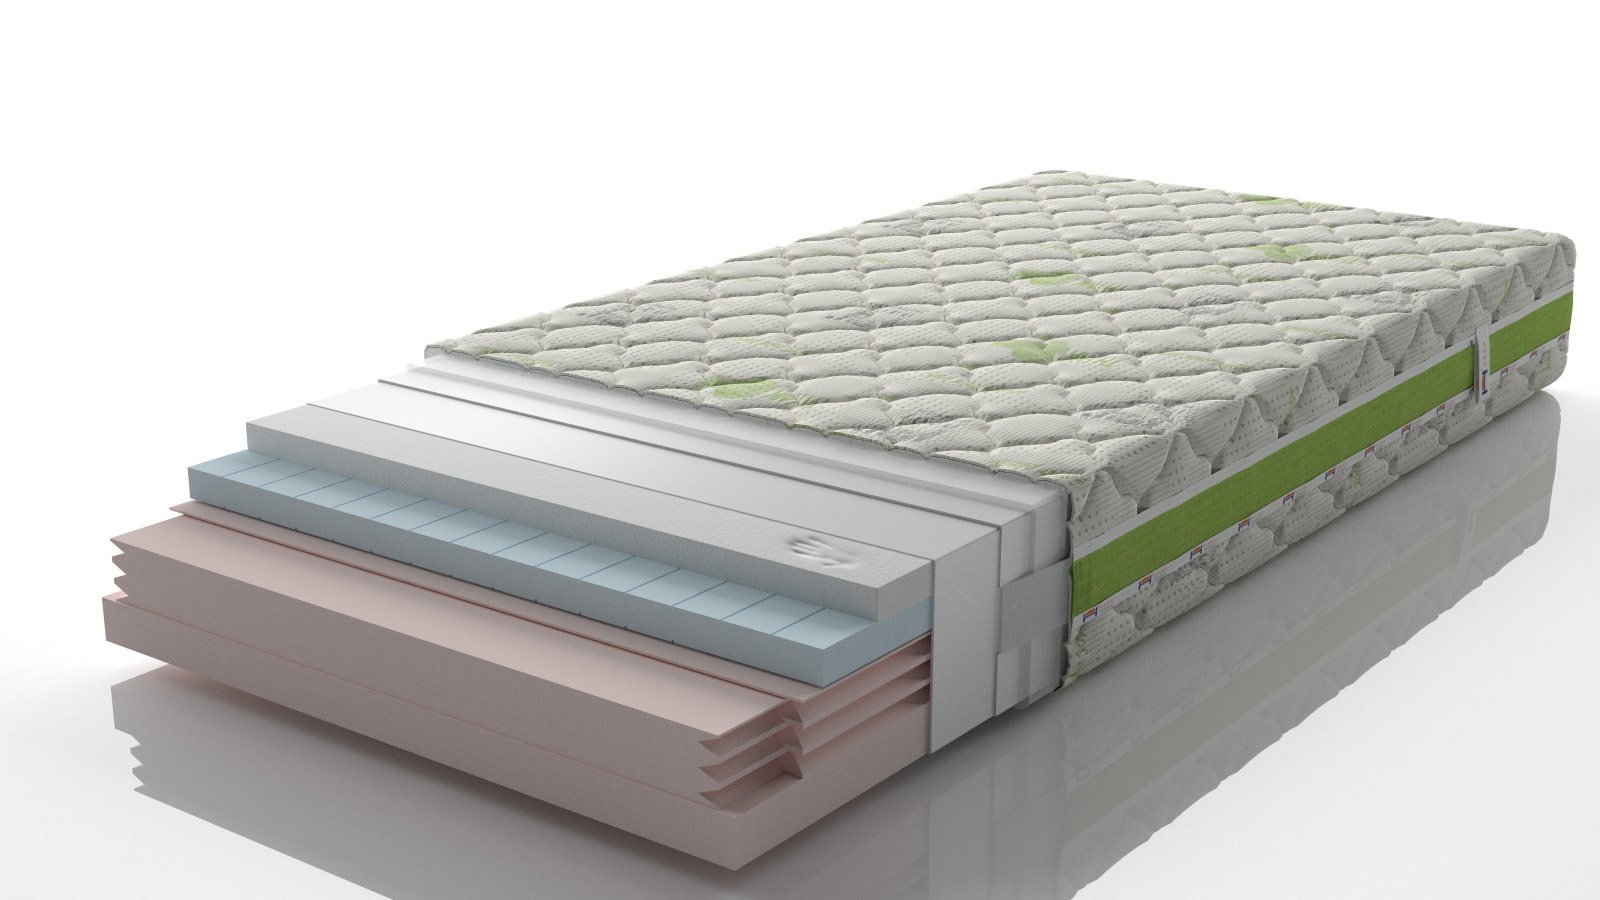 sectional view of the mattress